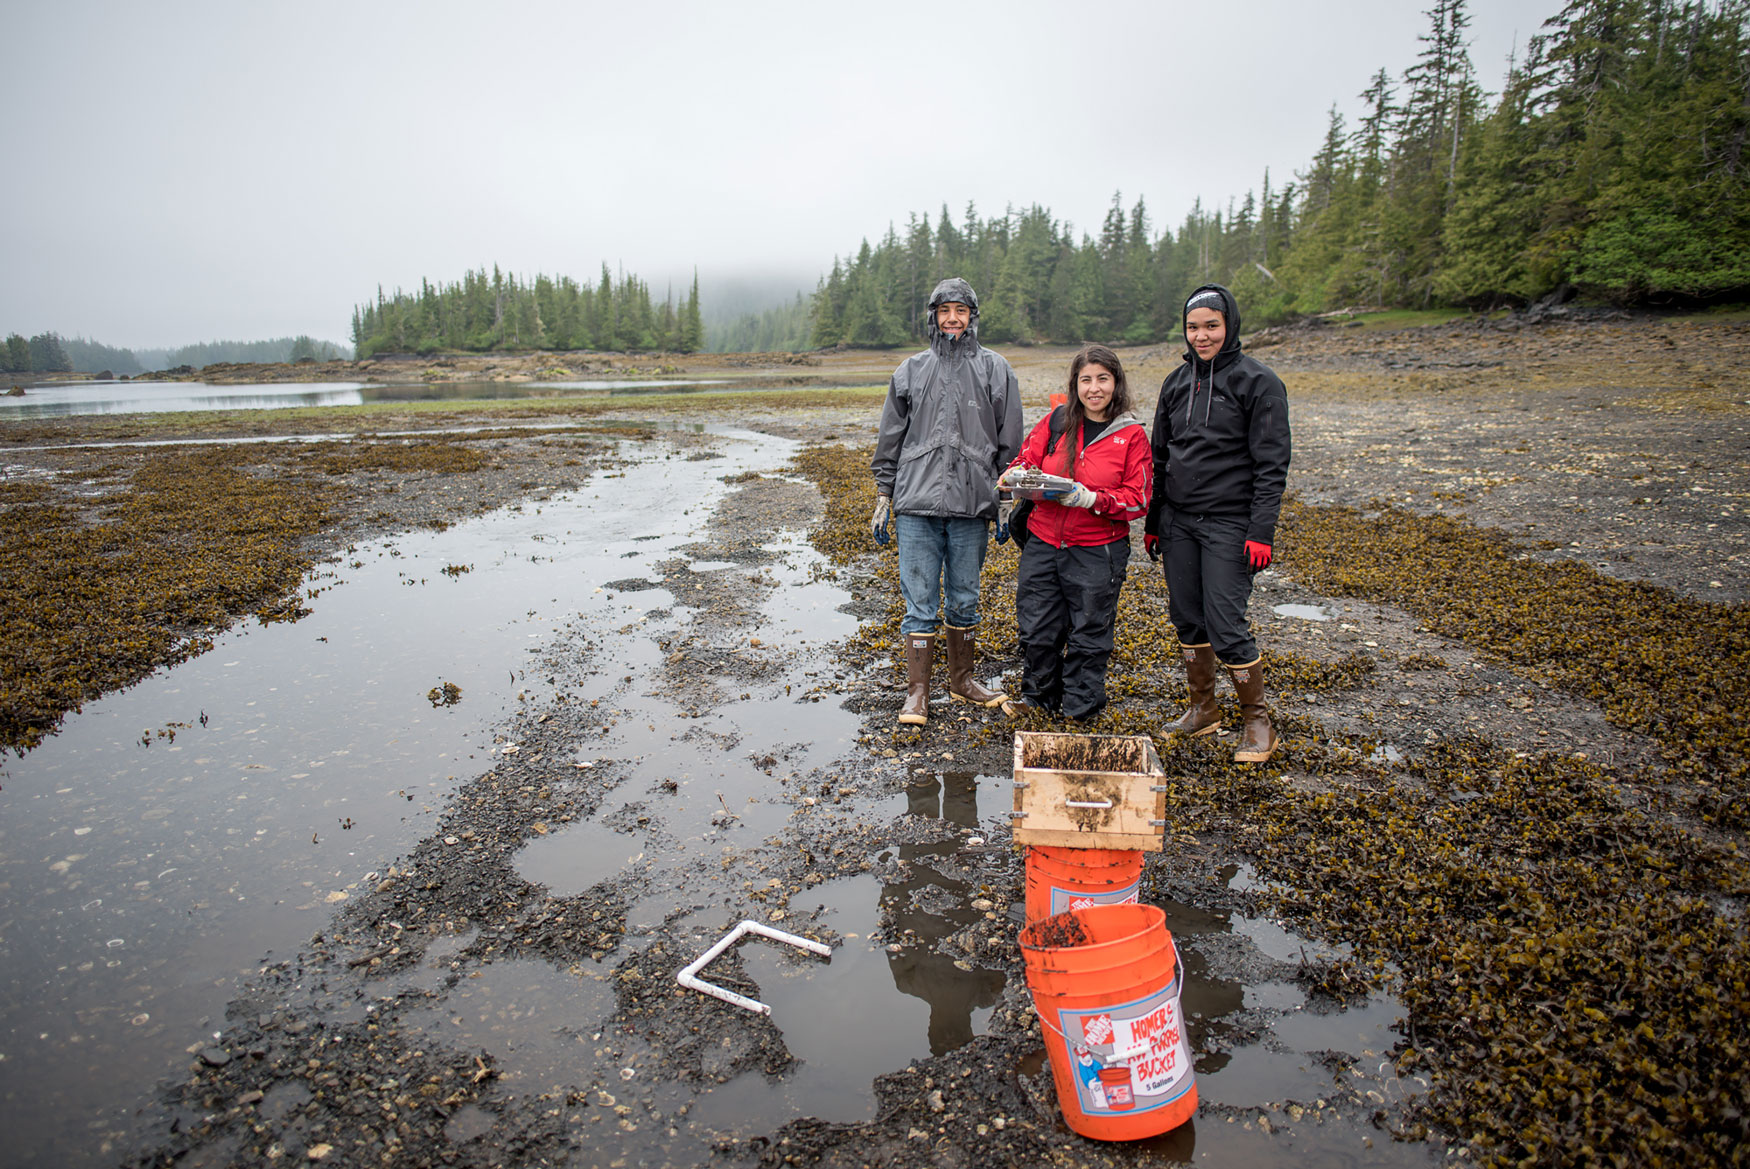 Joe, Sonia and Minnie at the Biscuit Lagoon beach collecting data to understand sea otter impacts on shellfish populations. Photo by Bob Christensen